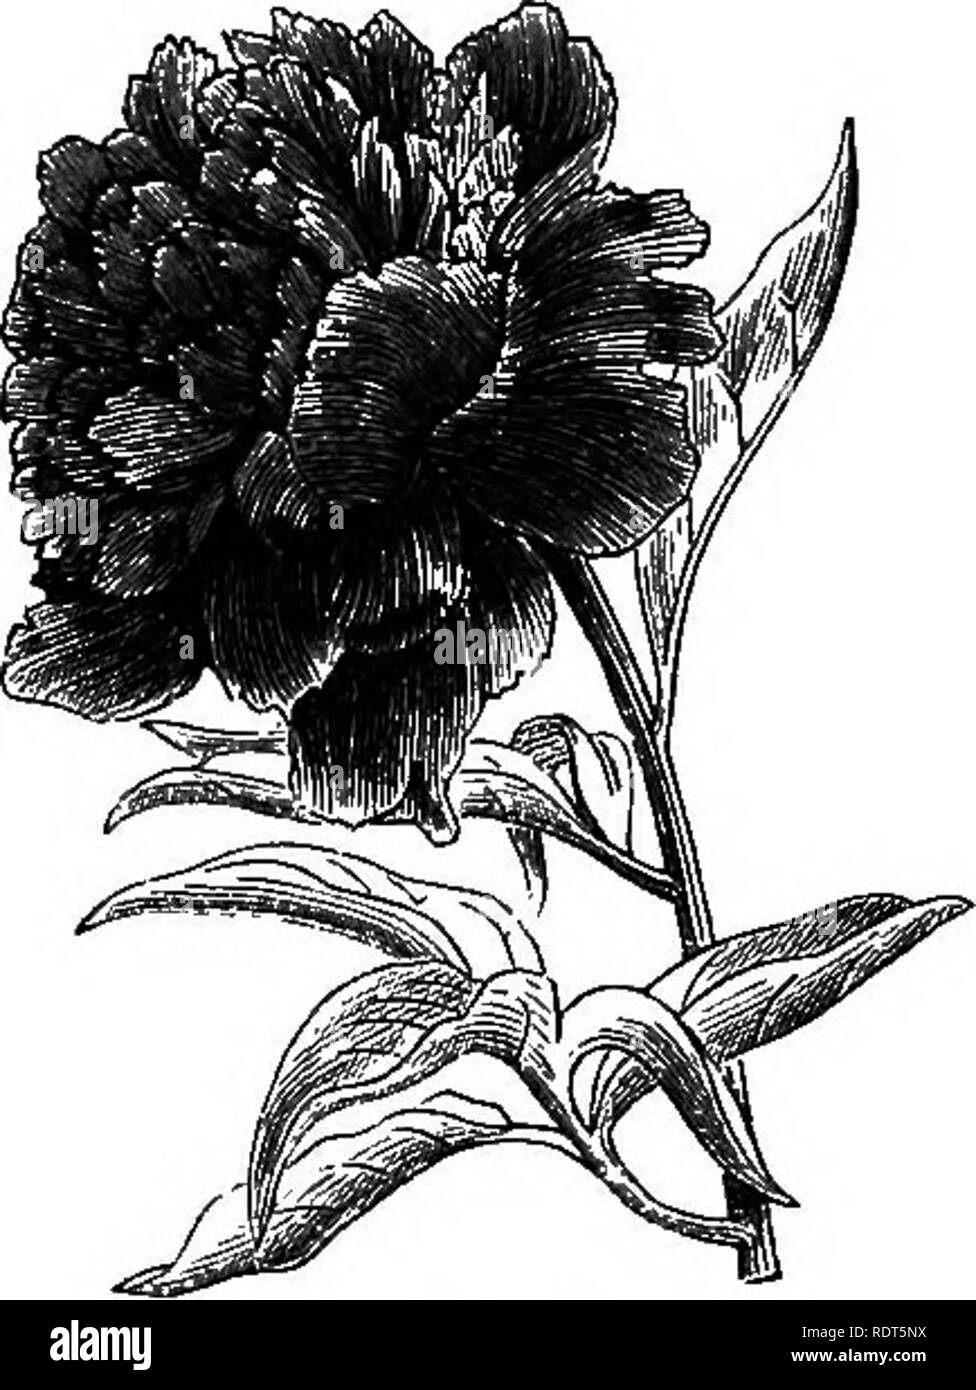 . My garden, its plan and culture together with a general description of its geology, botany, and natural history. Gardening. 234 MY GARDEN. A very showy flower, the Peony (fig. 460), blossoms at the end of May. There are many varieties ; they are more remarkable for their size than for their beauty. I have had various plants, but never have been satisfied with any of them. There are many fine kinds which will hardly flower in our climate. The Chinese and Japanese are reputed to possess endless varieties of these flowers. The Gunnera scabra is a remarkable plant, with ornamental leaves somewha Stock Photo